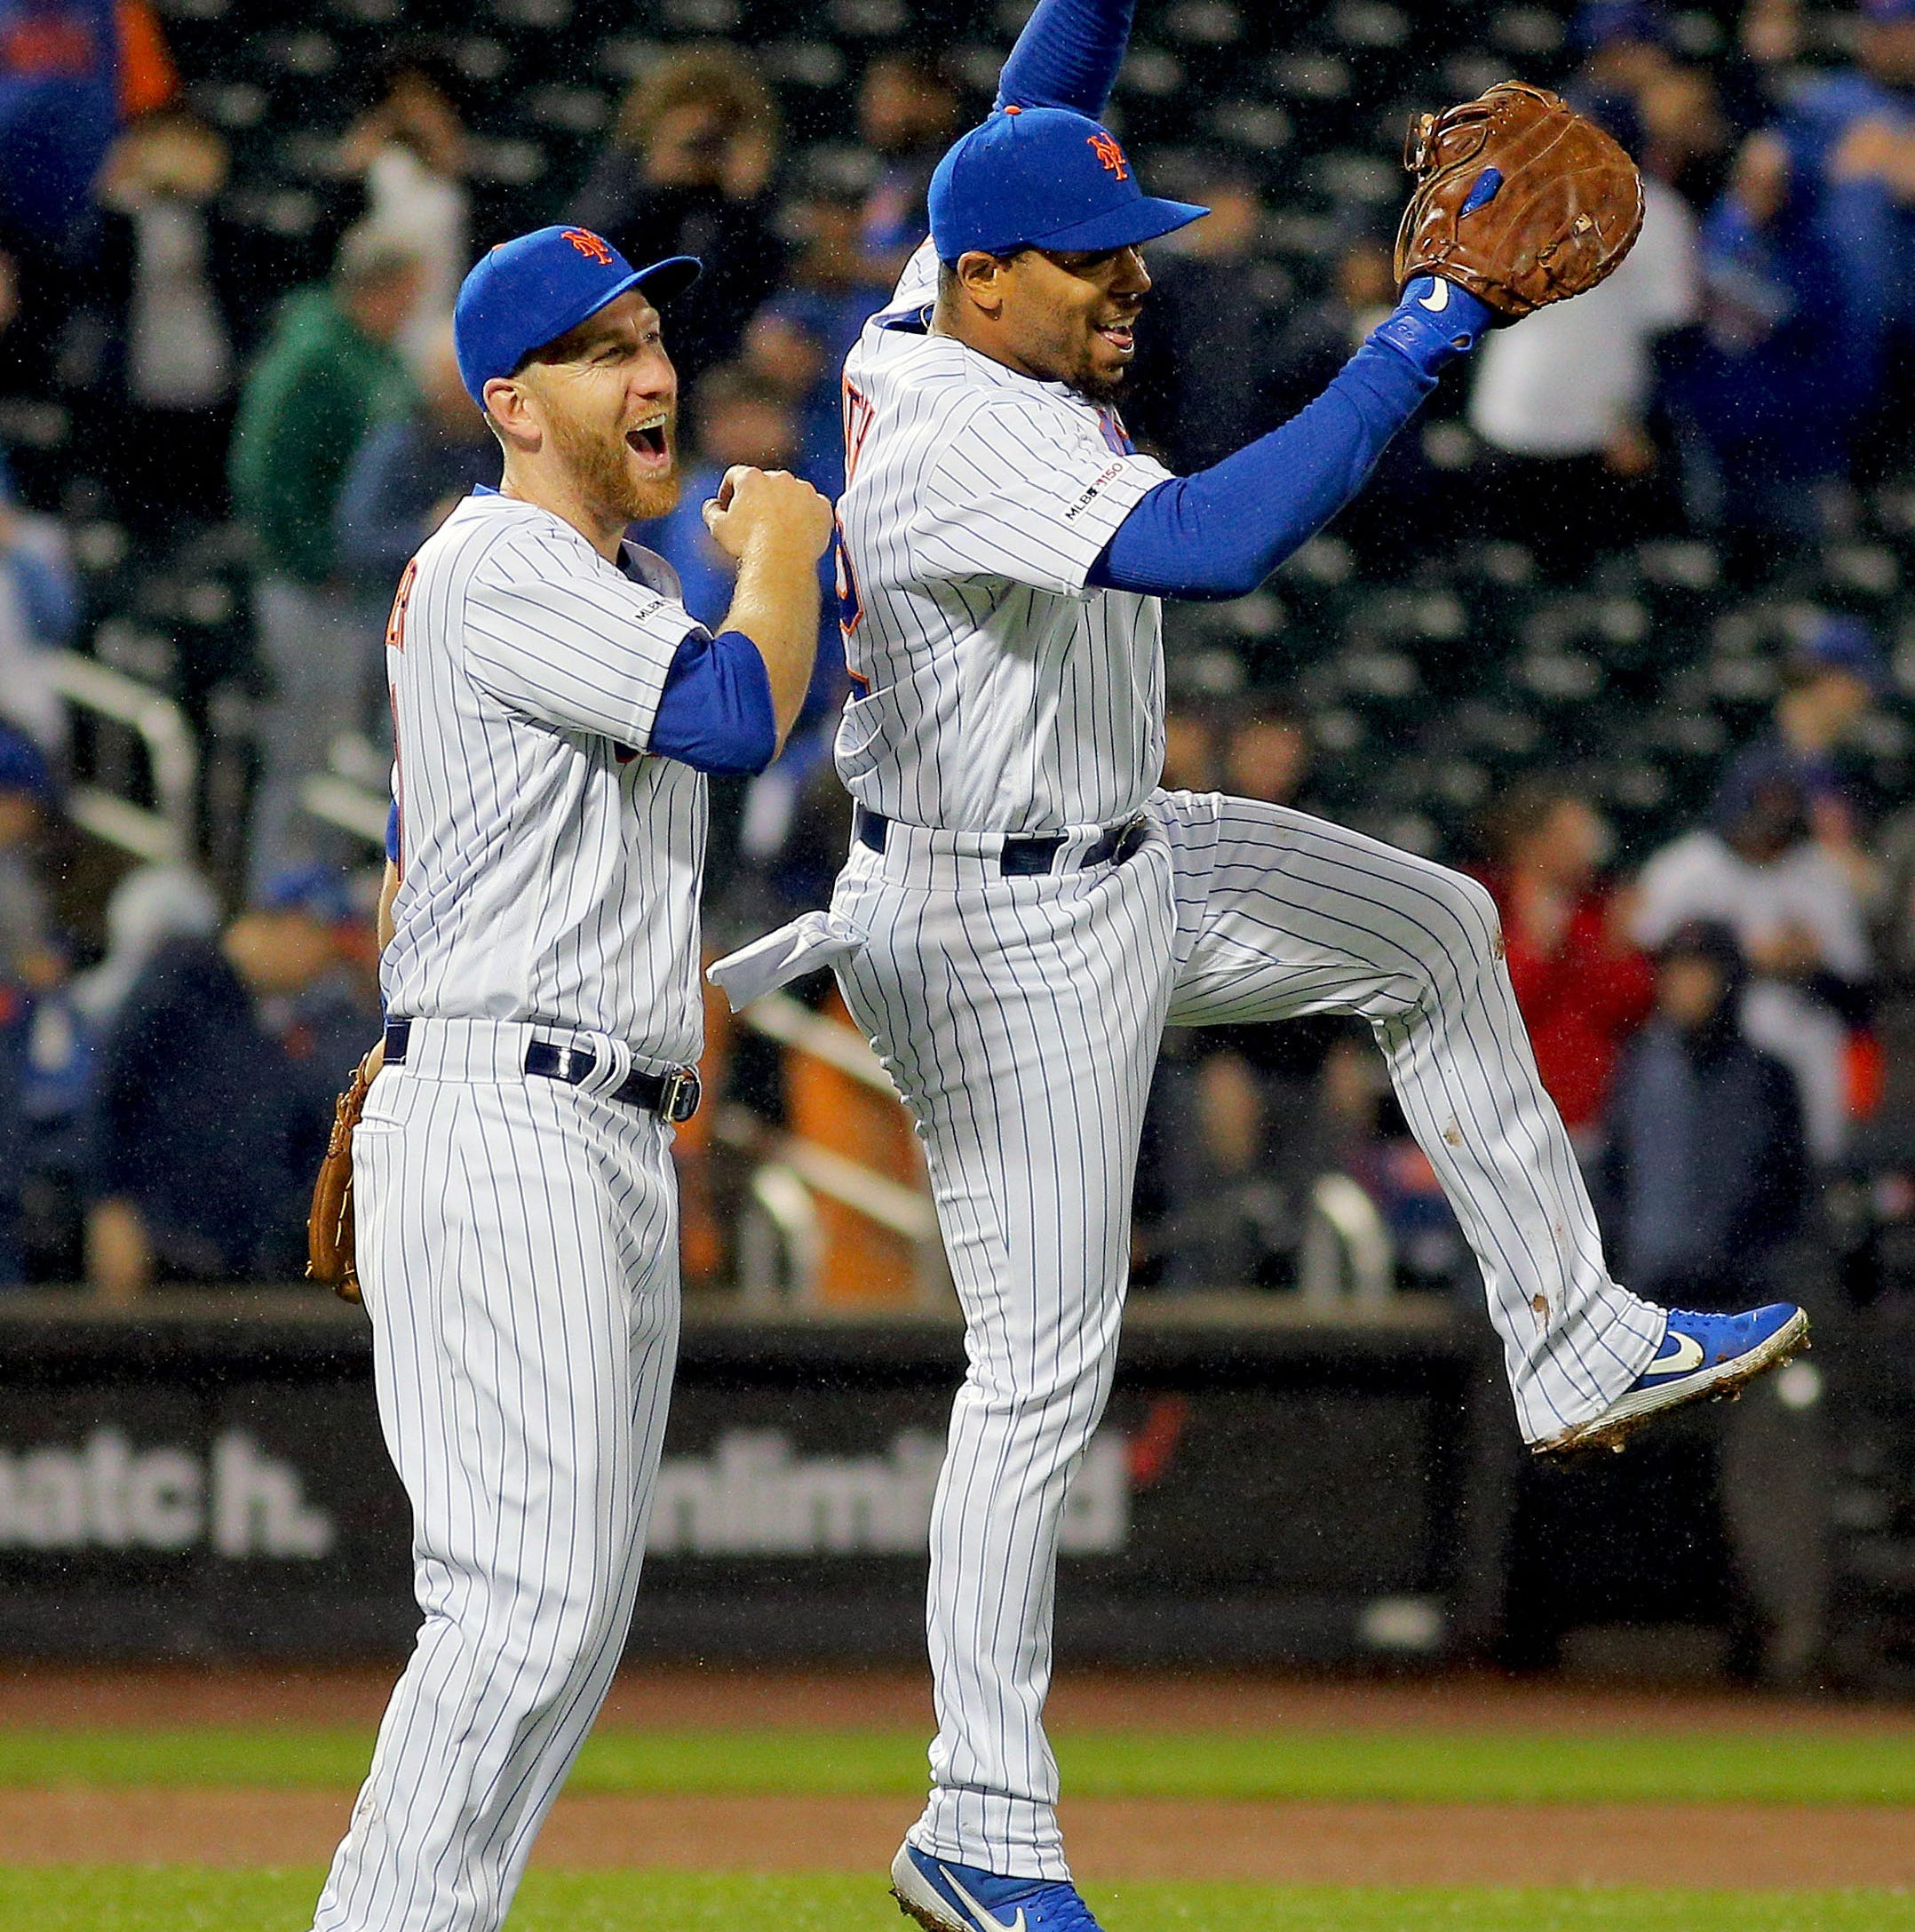 Five takeaways from Monday's NY Mets win over the Phillies